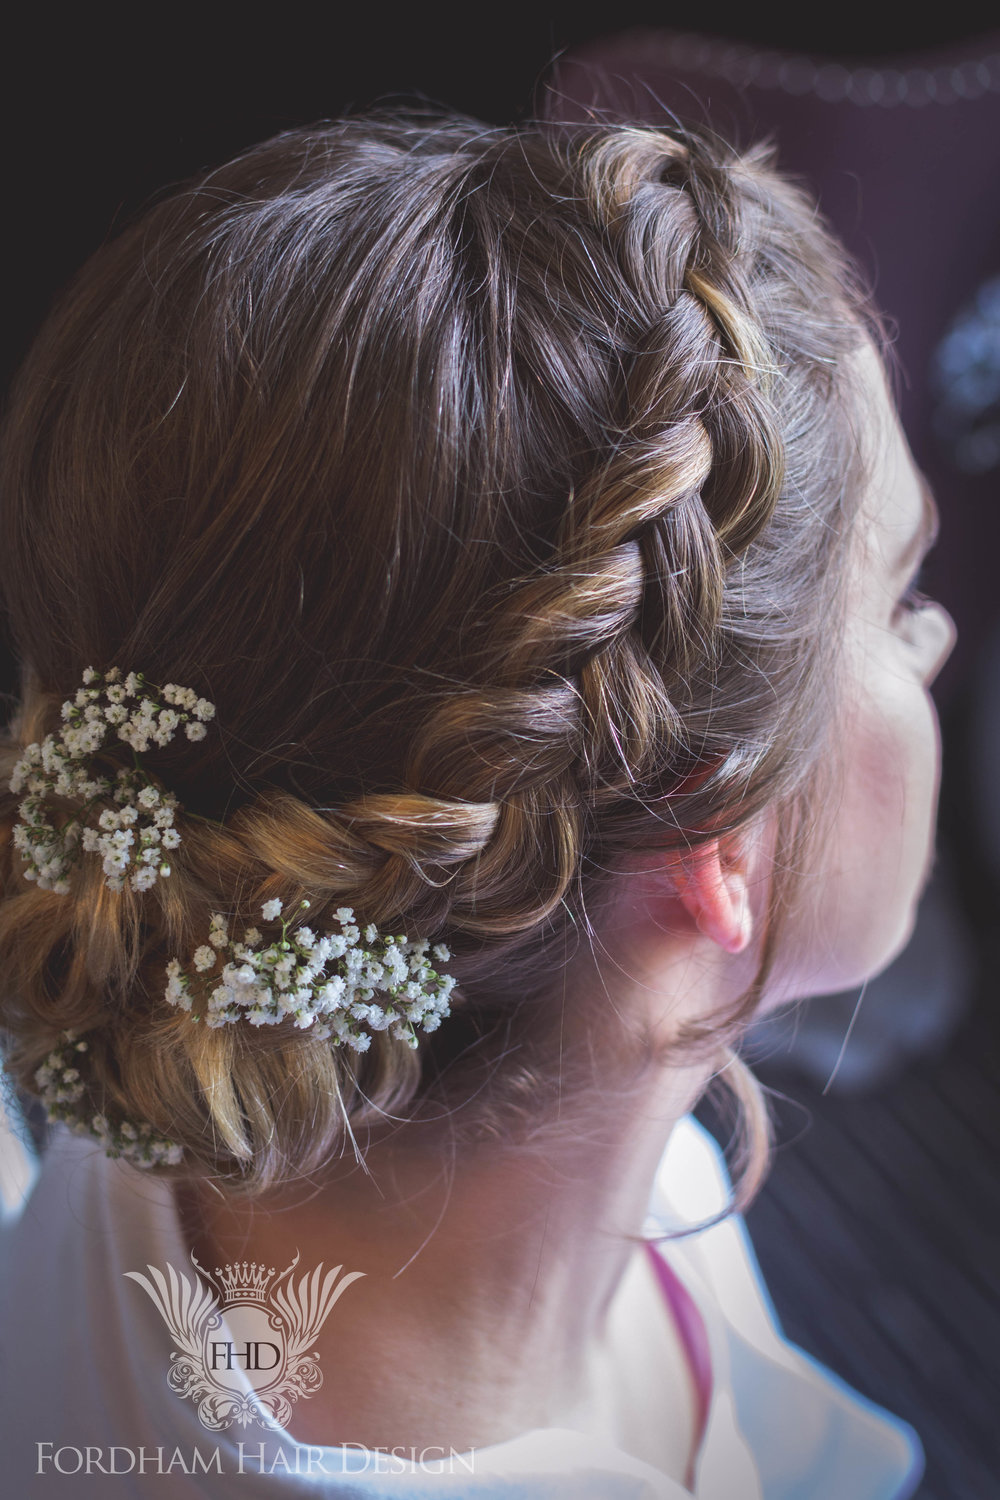 Wedding Hair Stylist Cripps Barn